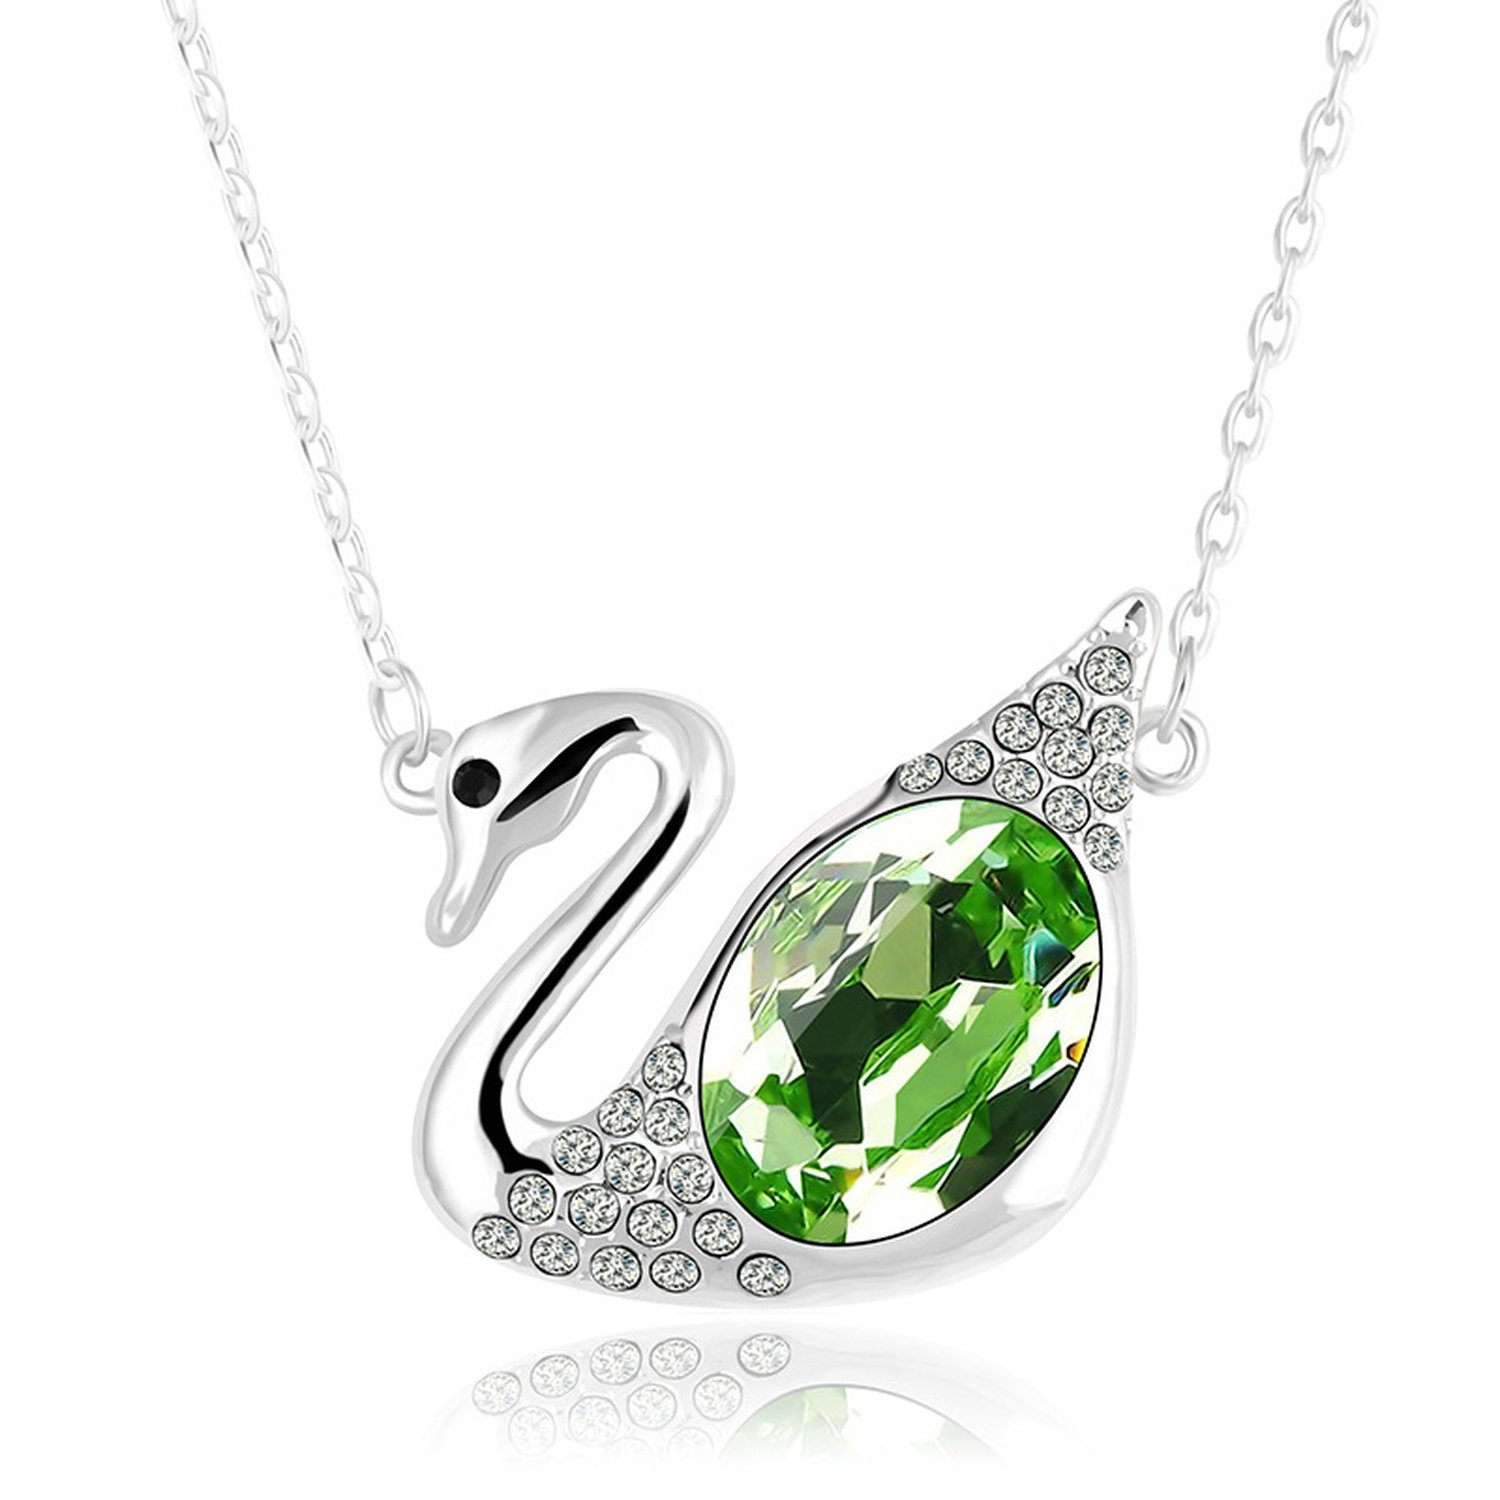 Collocation-Online 2018 high-end Crystal Jewelry Manufacturers Exquisite Swan Necklace hot New Money Ornaments